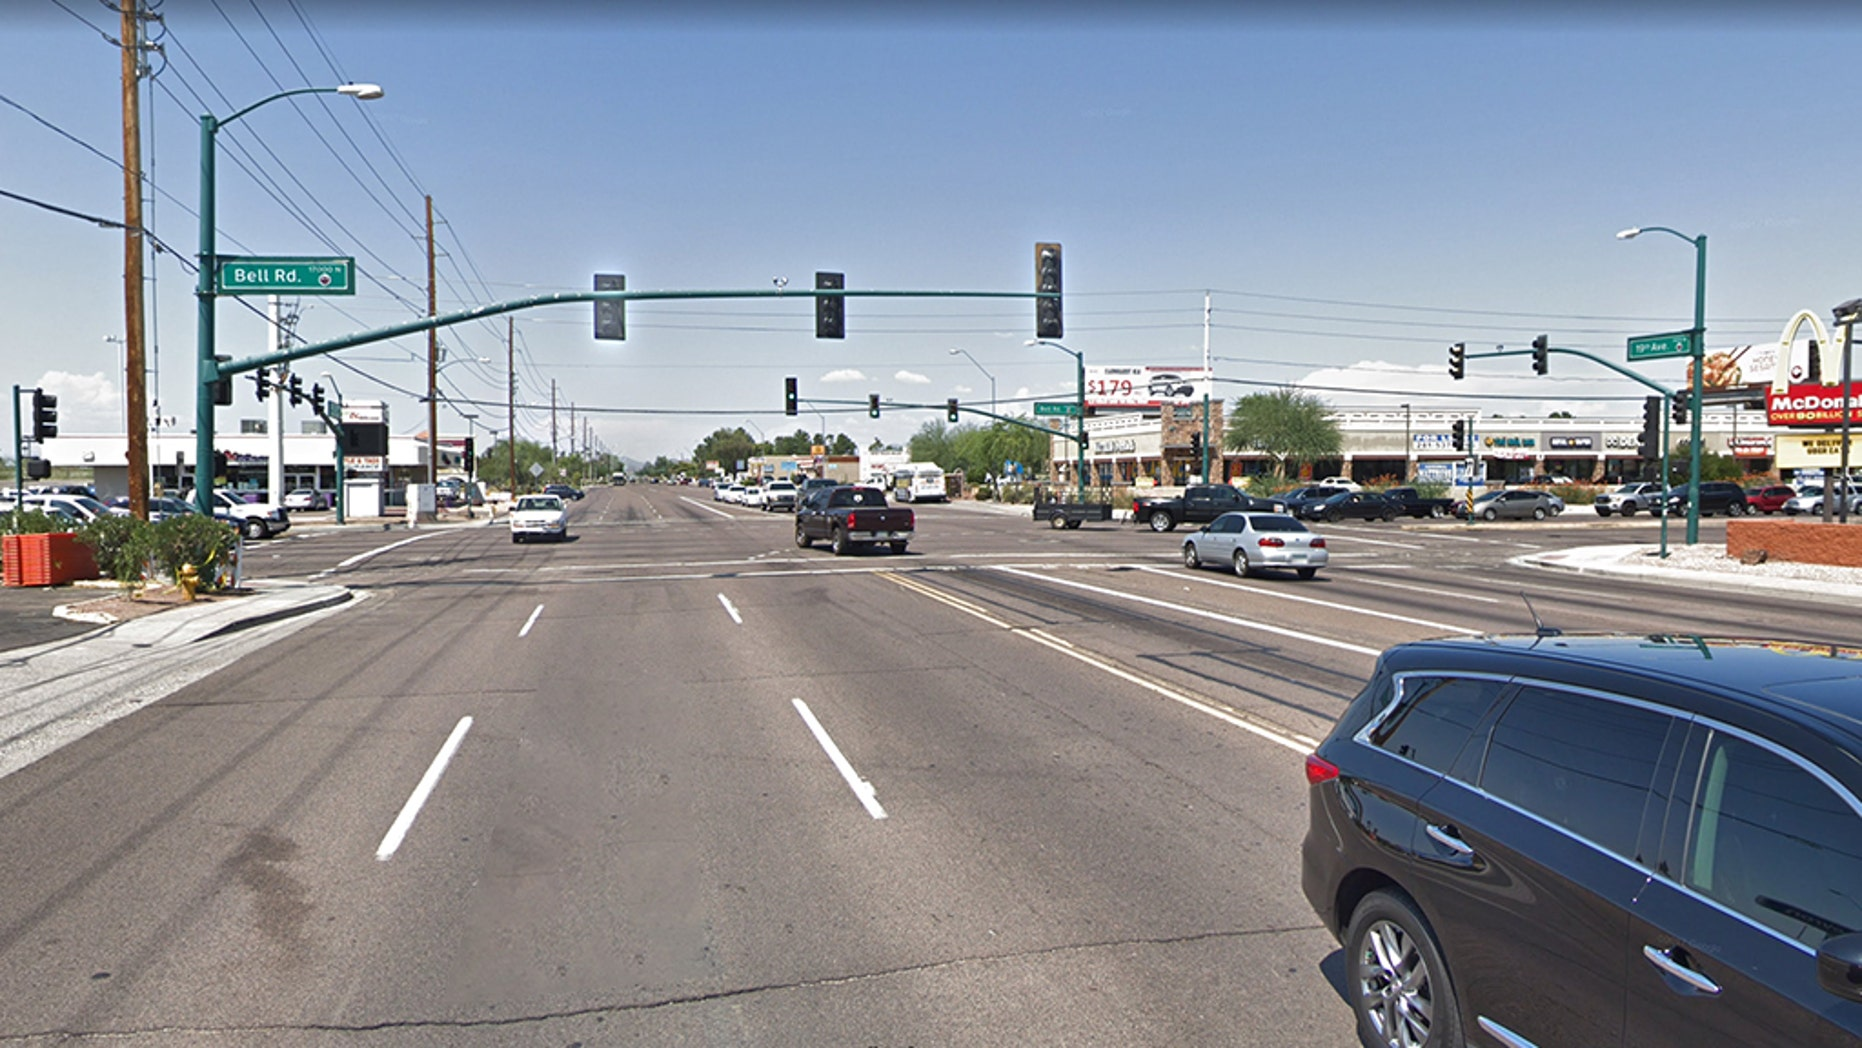 An alleged attempt to kidnap an 11-year-old Phoenix girl on the way to school near this intersection was scuttled when a witness intervened, police said.